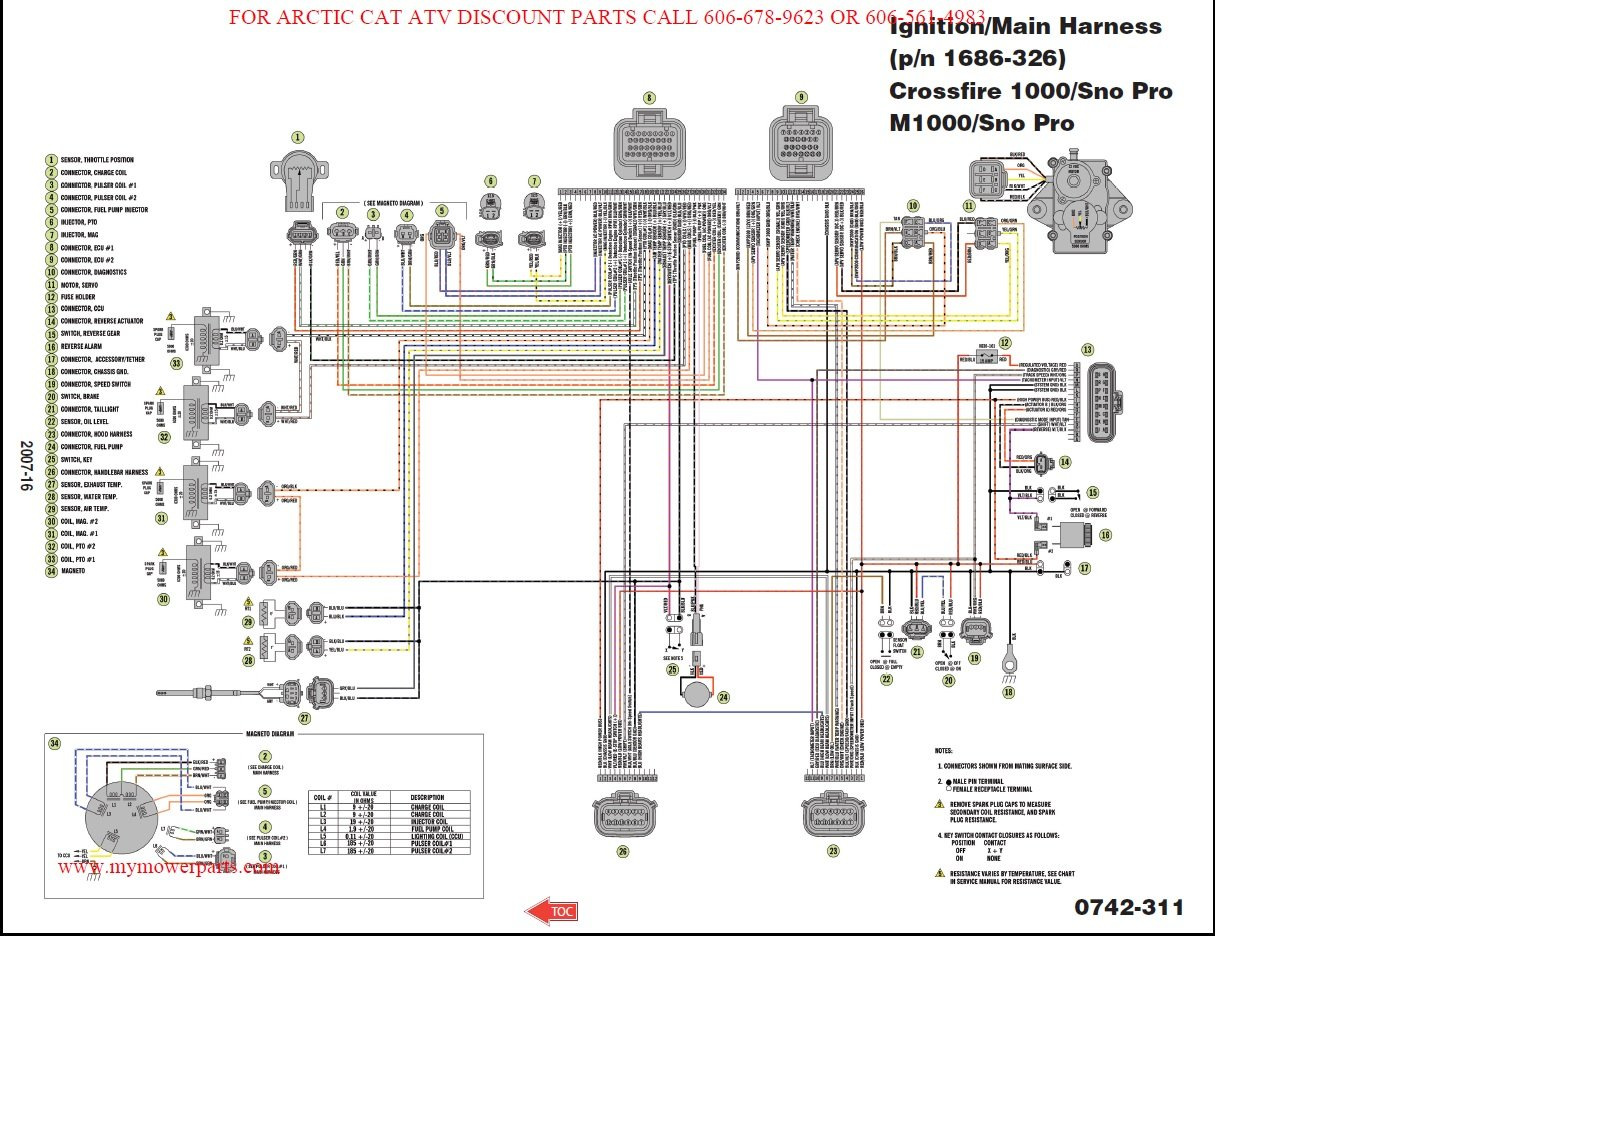 hight resolution of arctic cat 650 h1 wiring diagram wiring diagram autovehicle a wiring diagram for 1994 arctic cat prowler